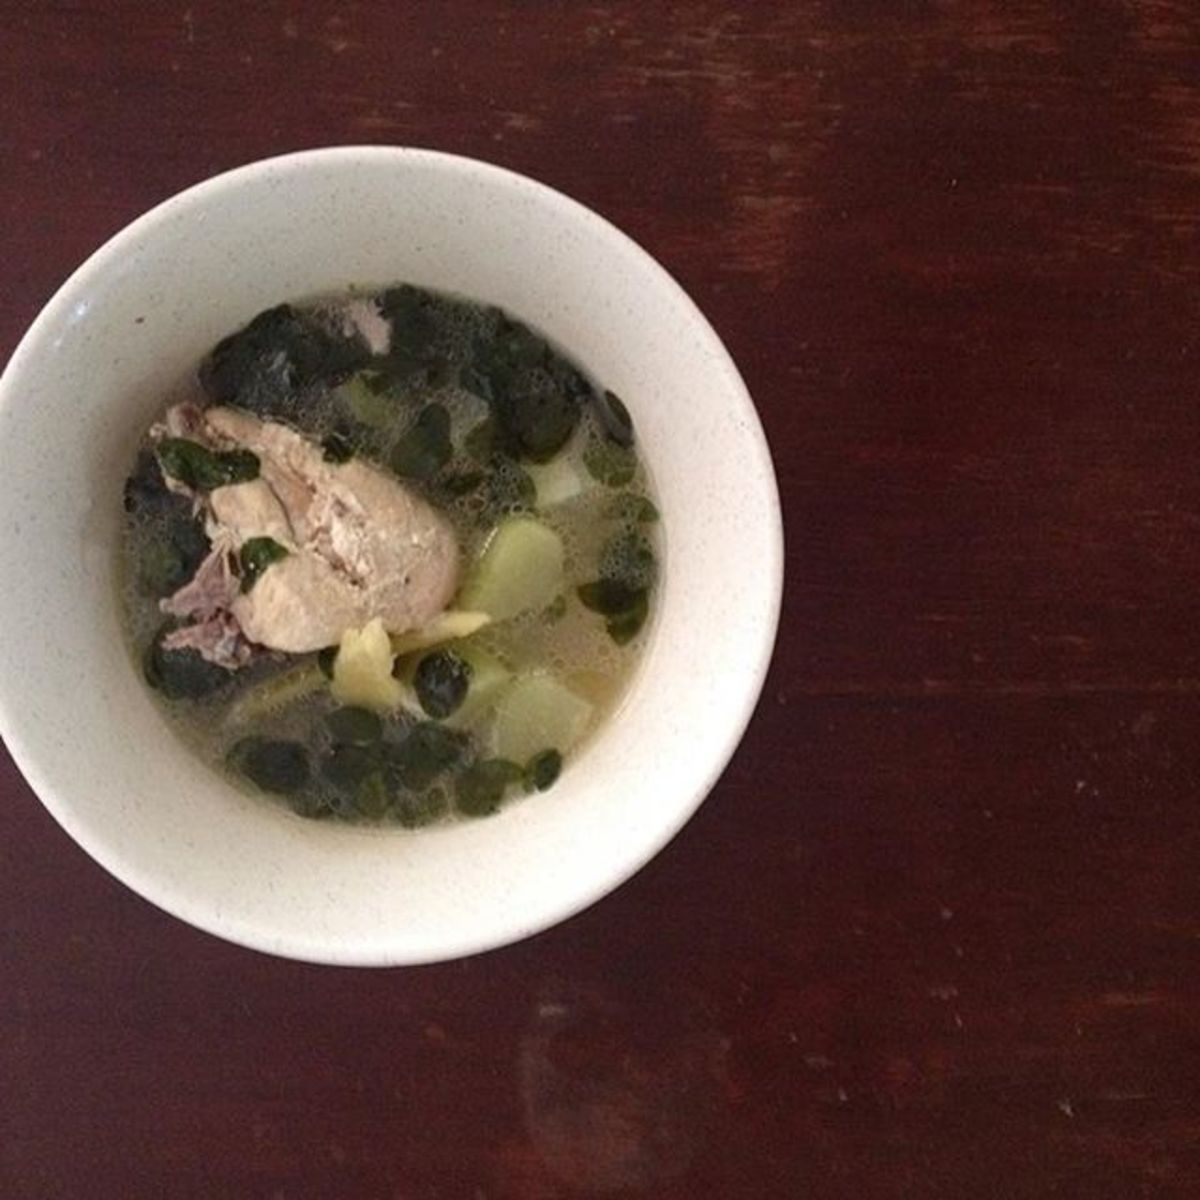 Chicken soup with Chayote and Moringga leaves